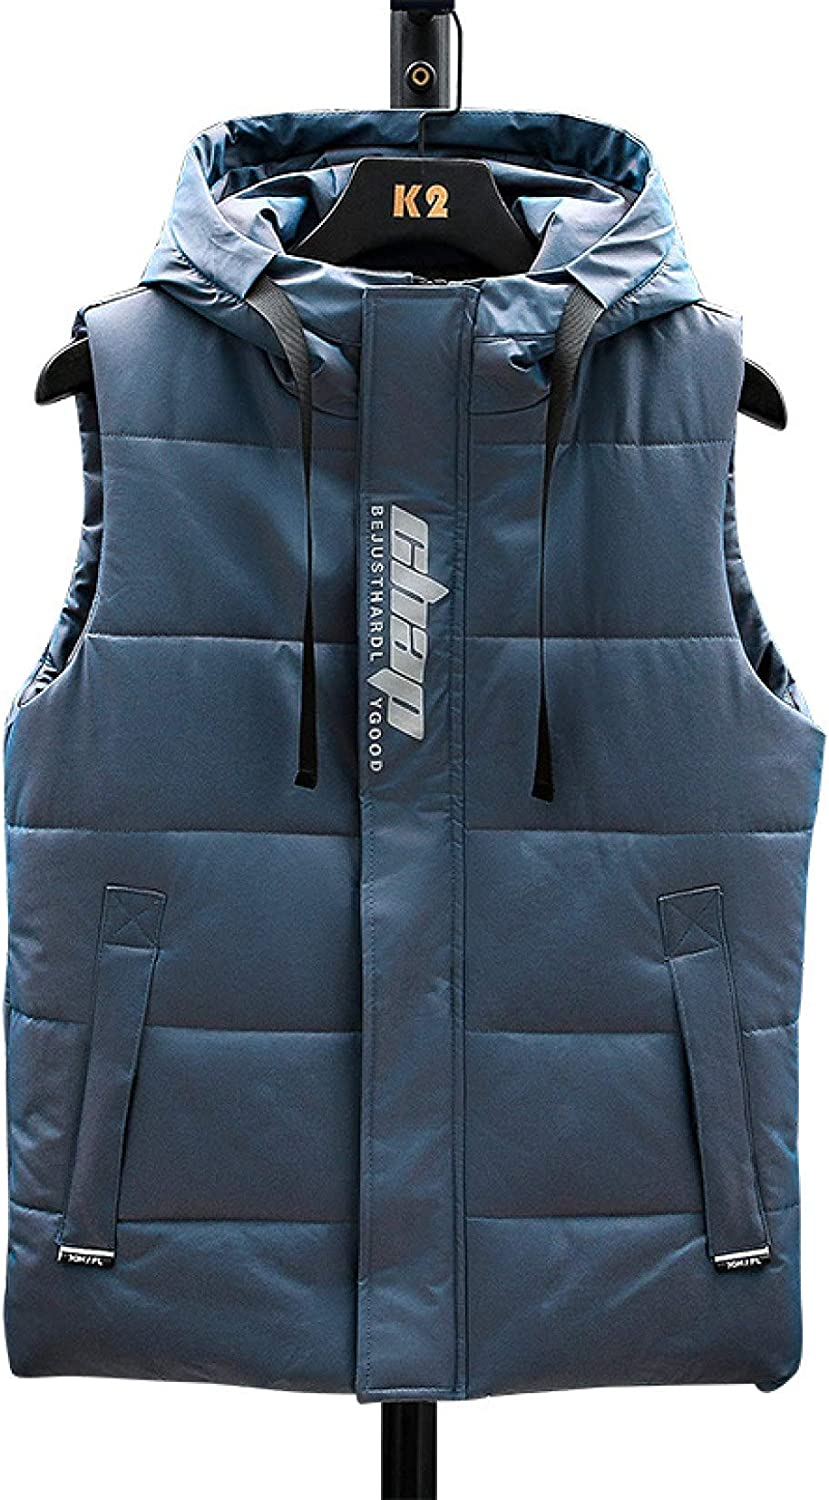 Mens Puffer Quilted Vest Polyester Detachable Hood Sleeveless Jacket Gilet Casual Stand Collar Padded Vests Coats